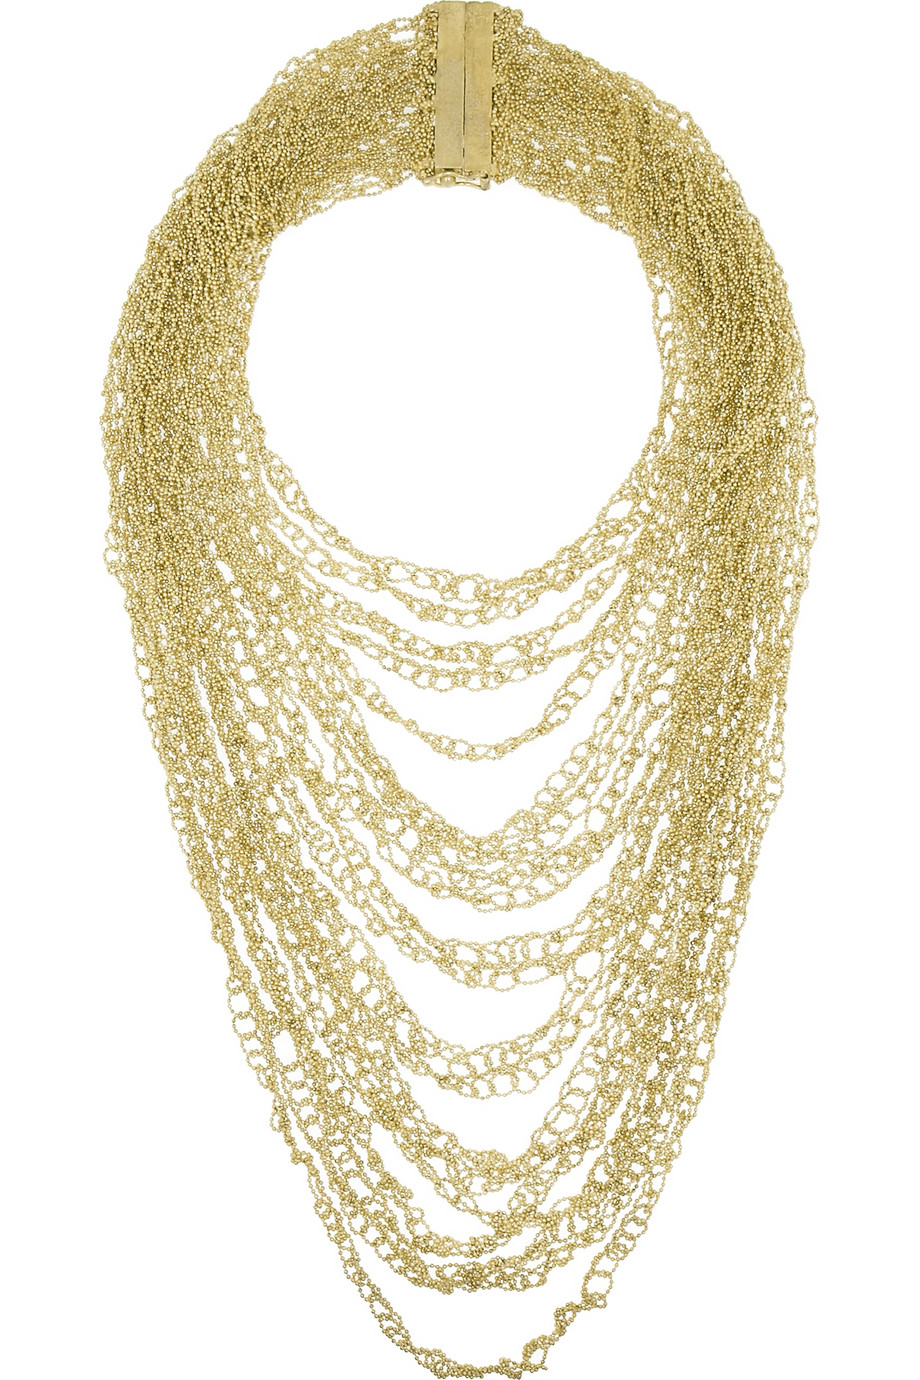 Rosantica Iliade Gold-Dipped Tiered Necklace Yohdp